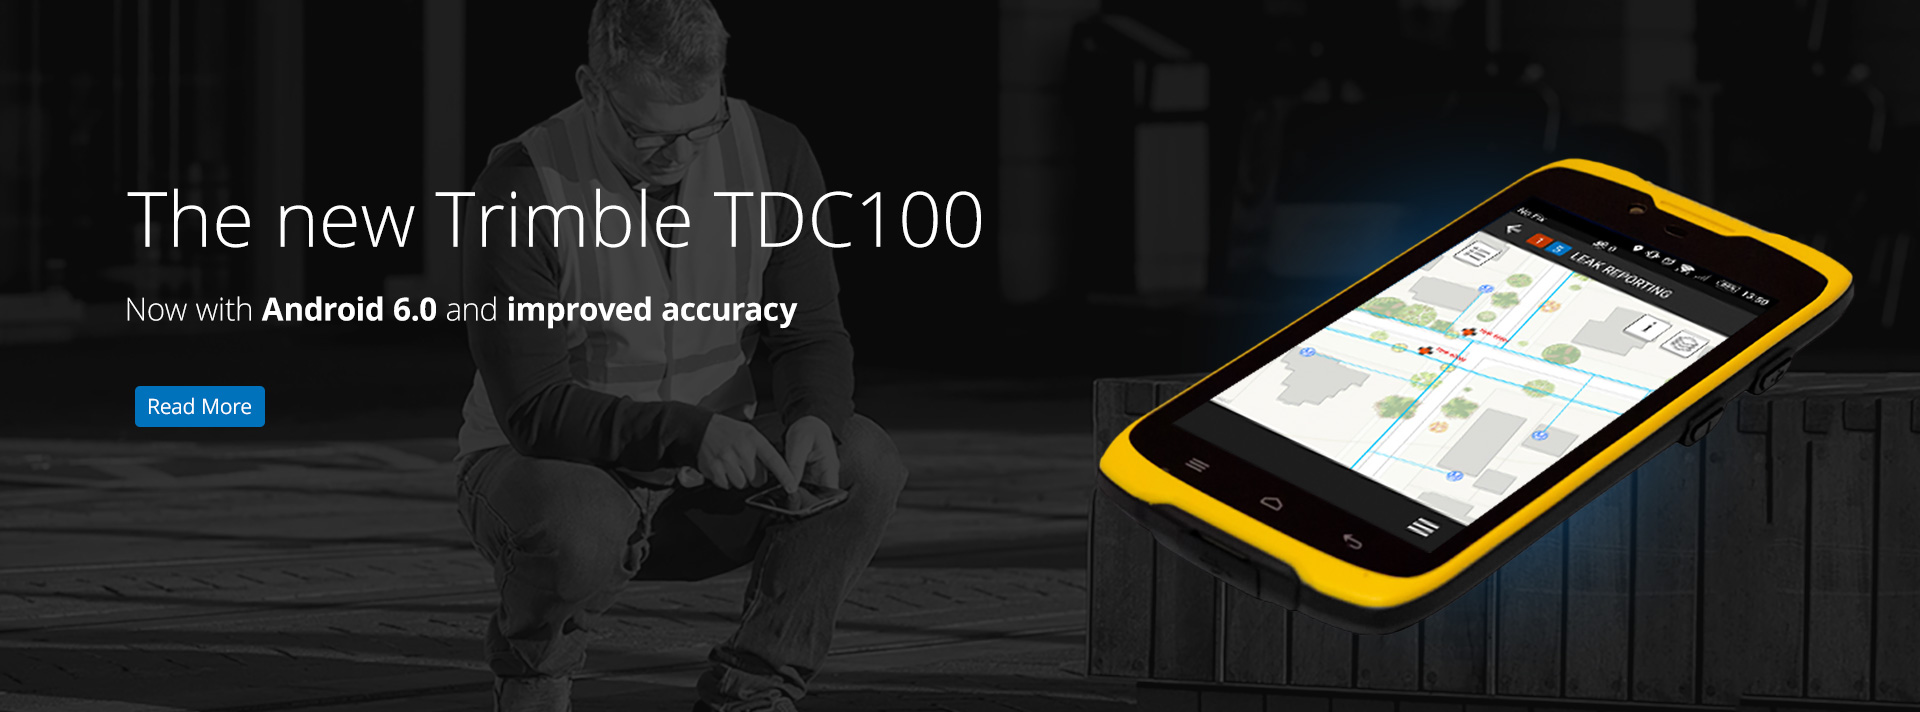 The new Trimble TDC100